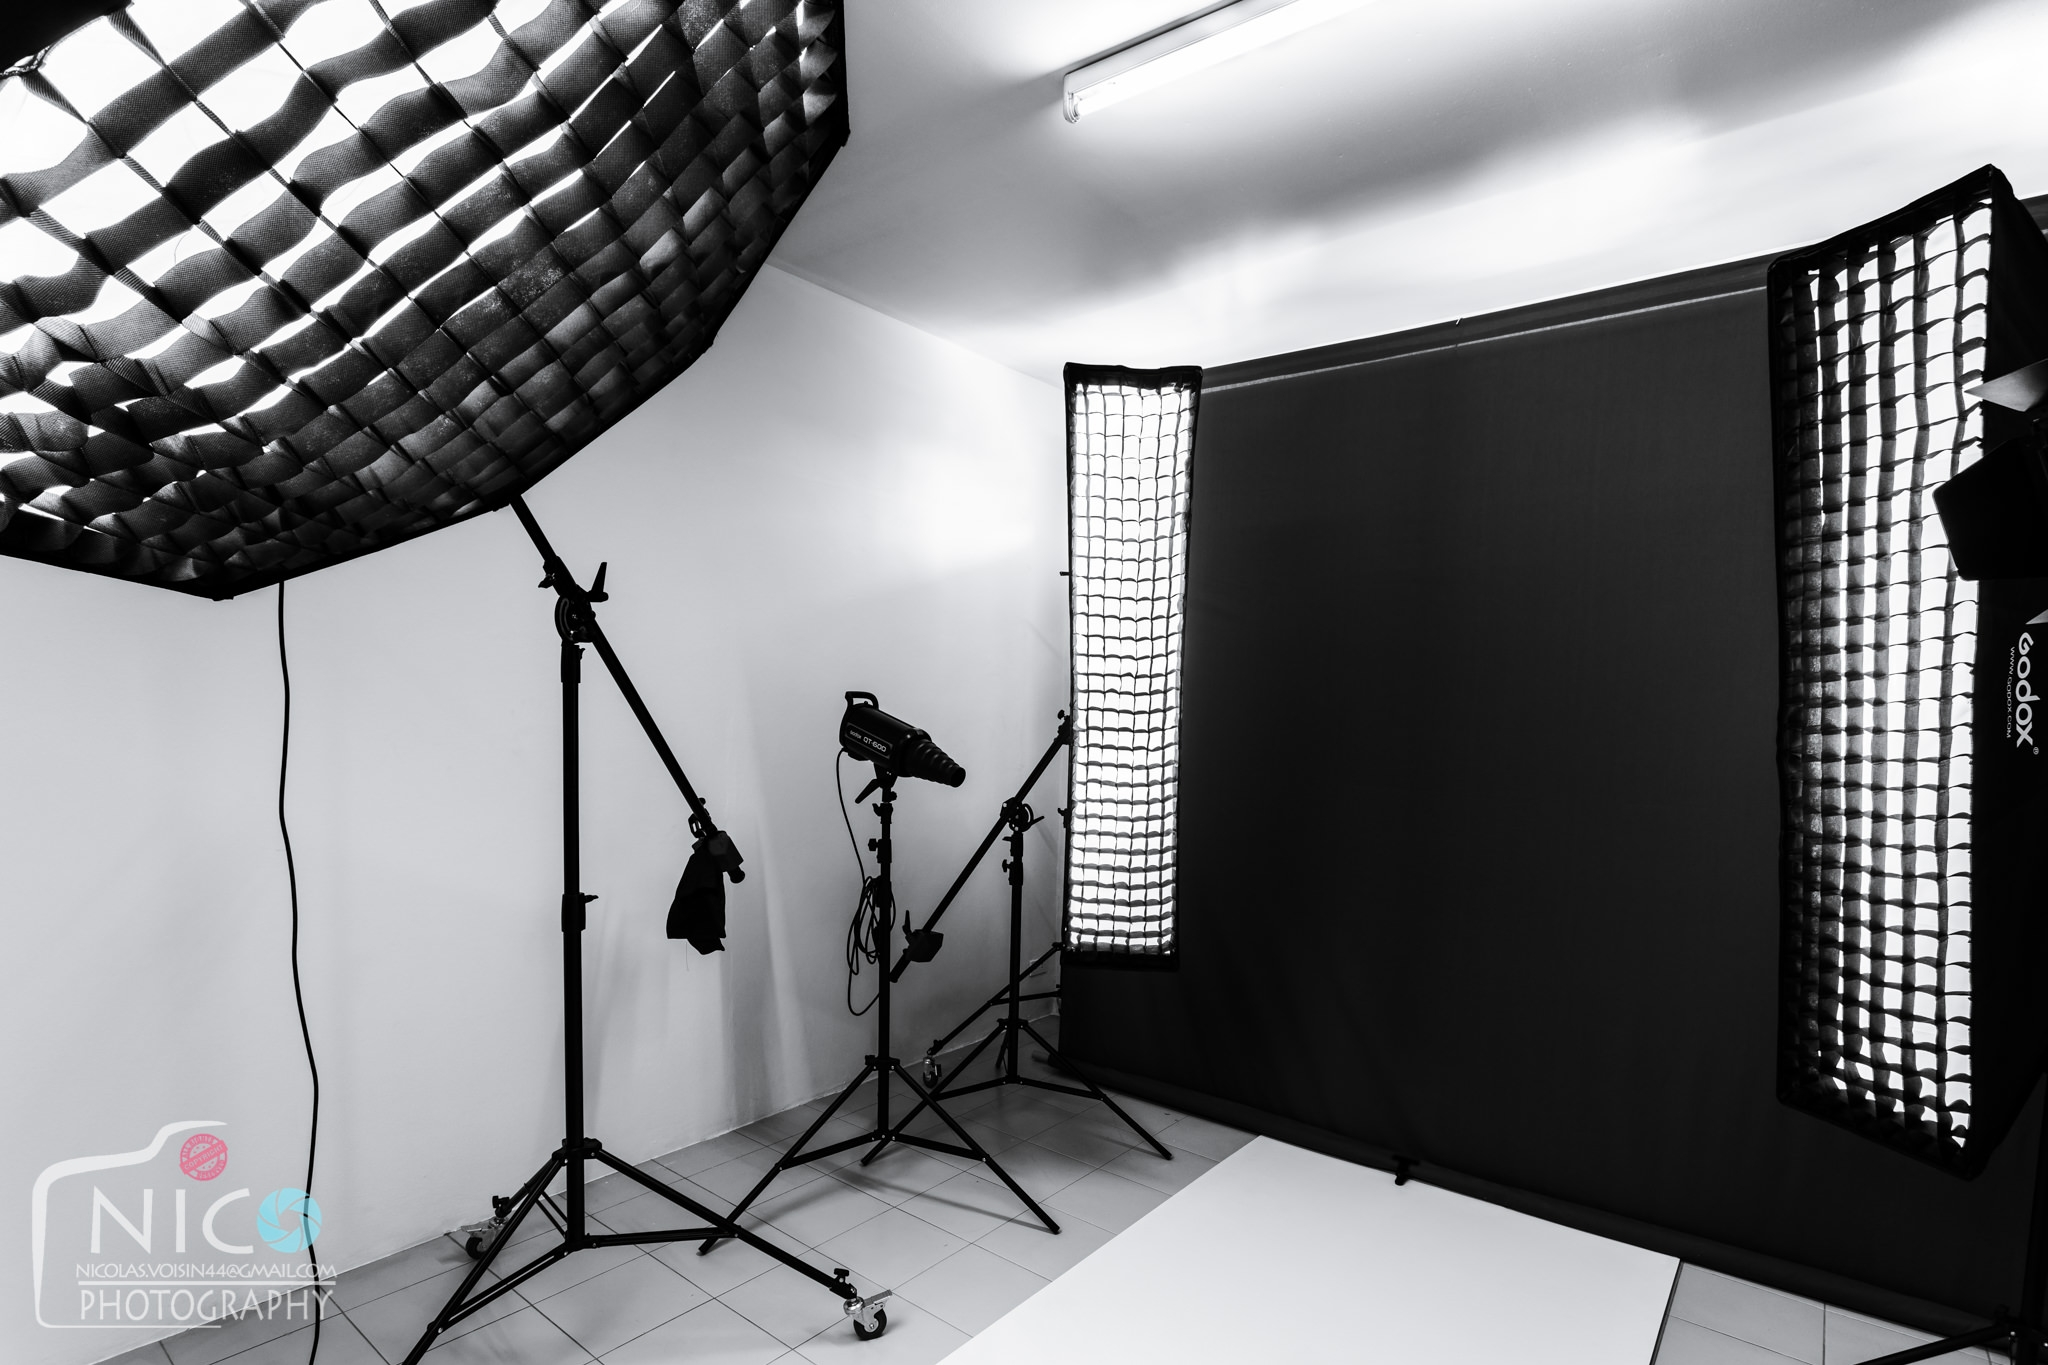 Samui Photo Studio, Studio Photography & rental in Koh Samui Thailand